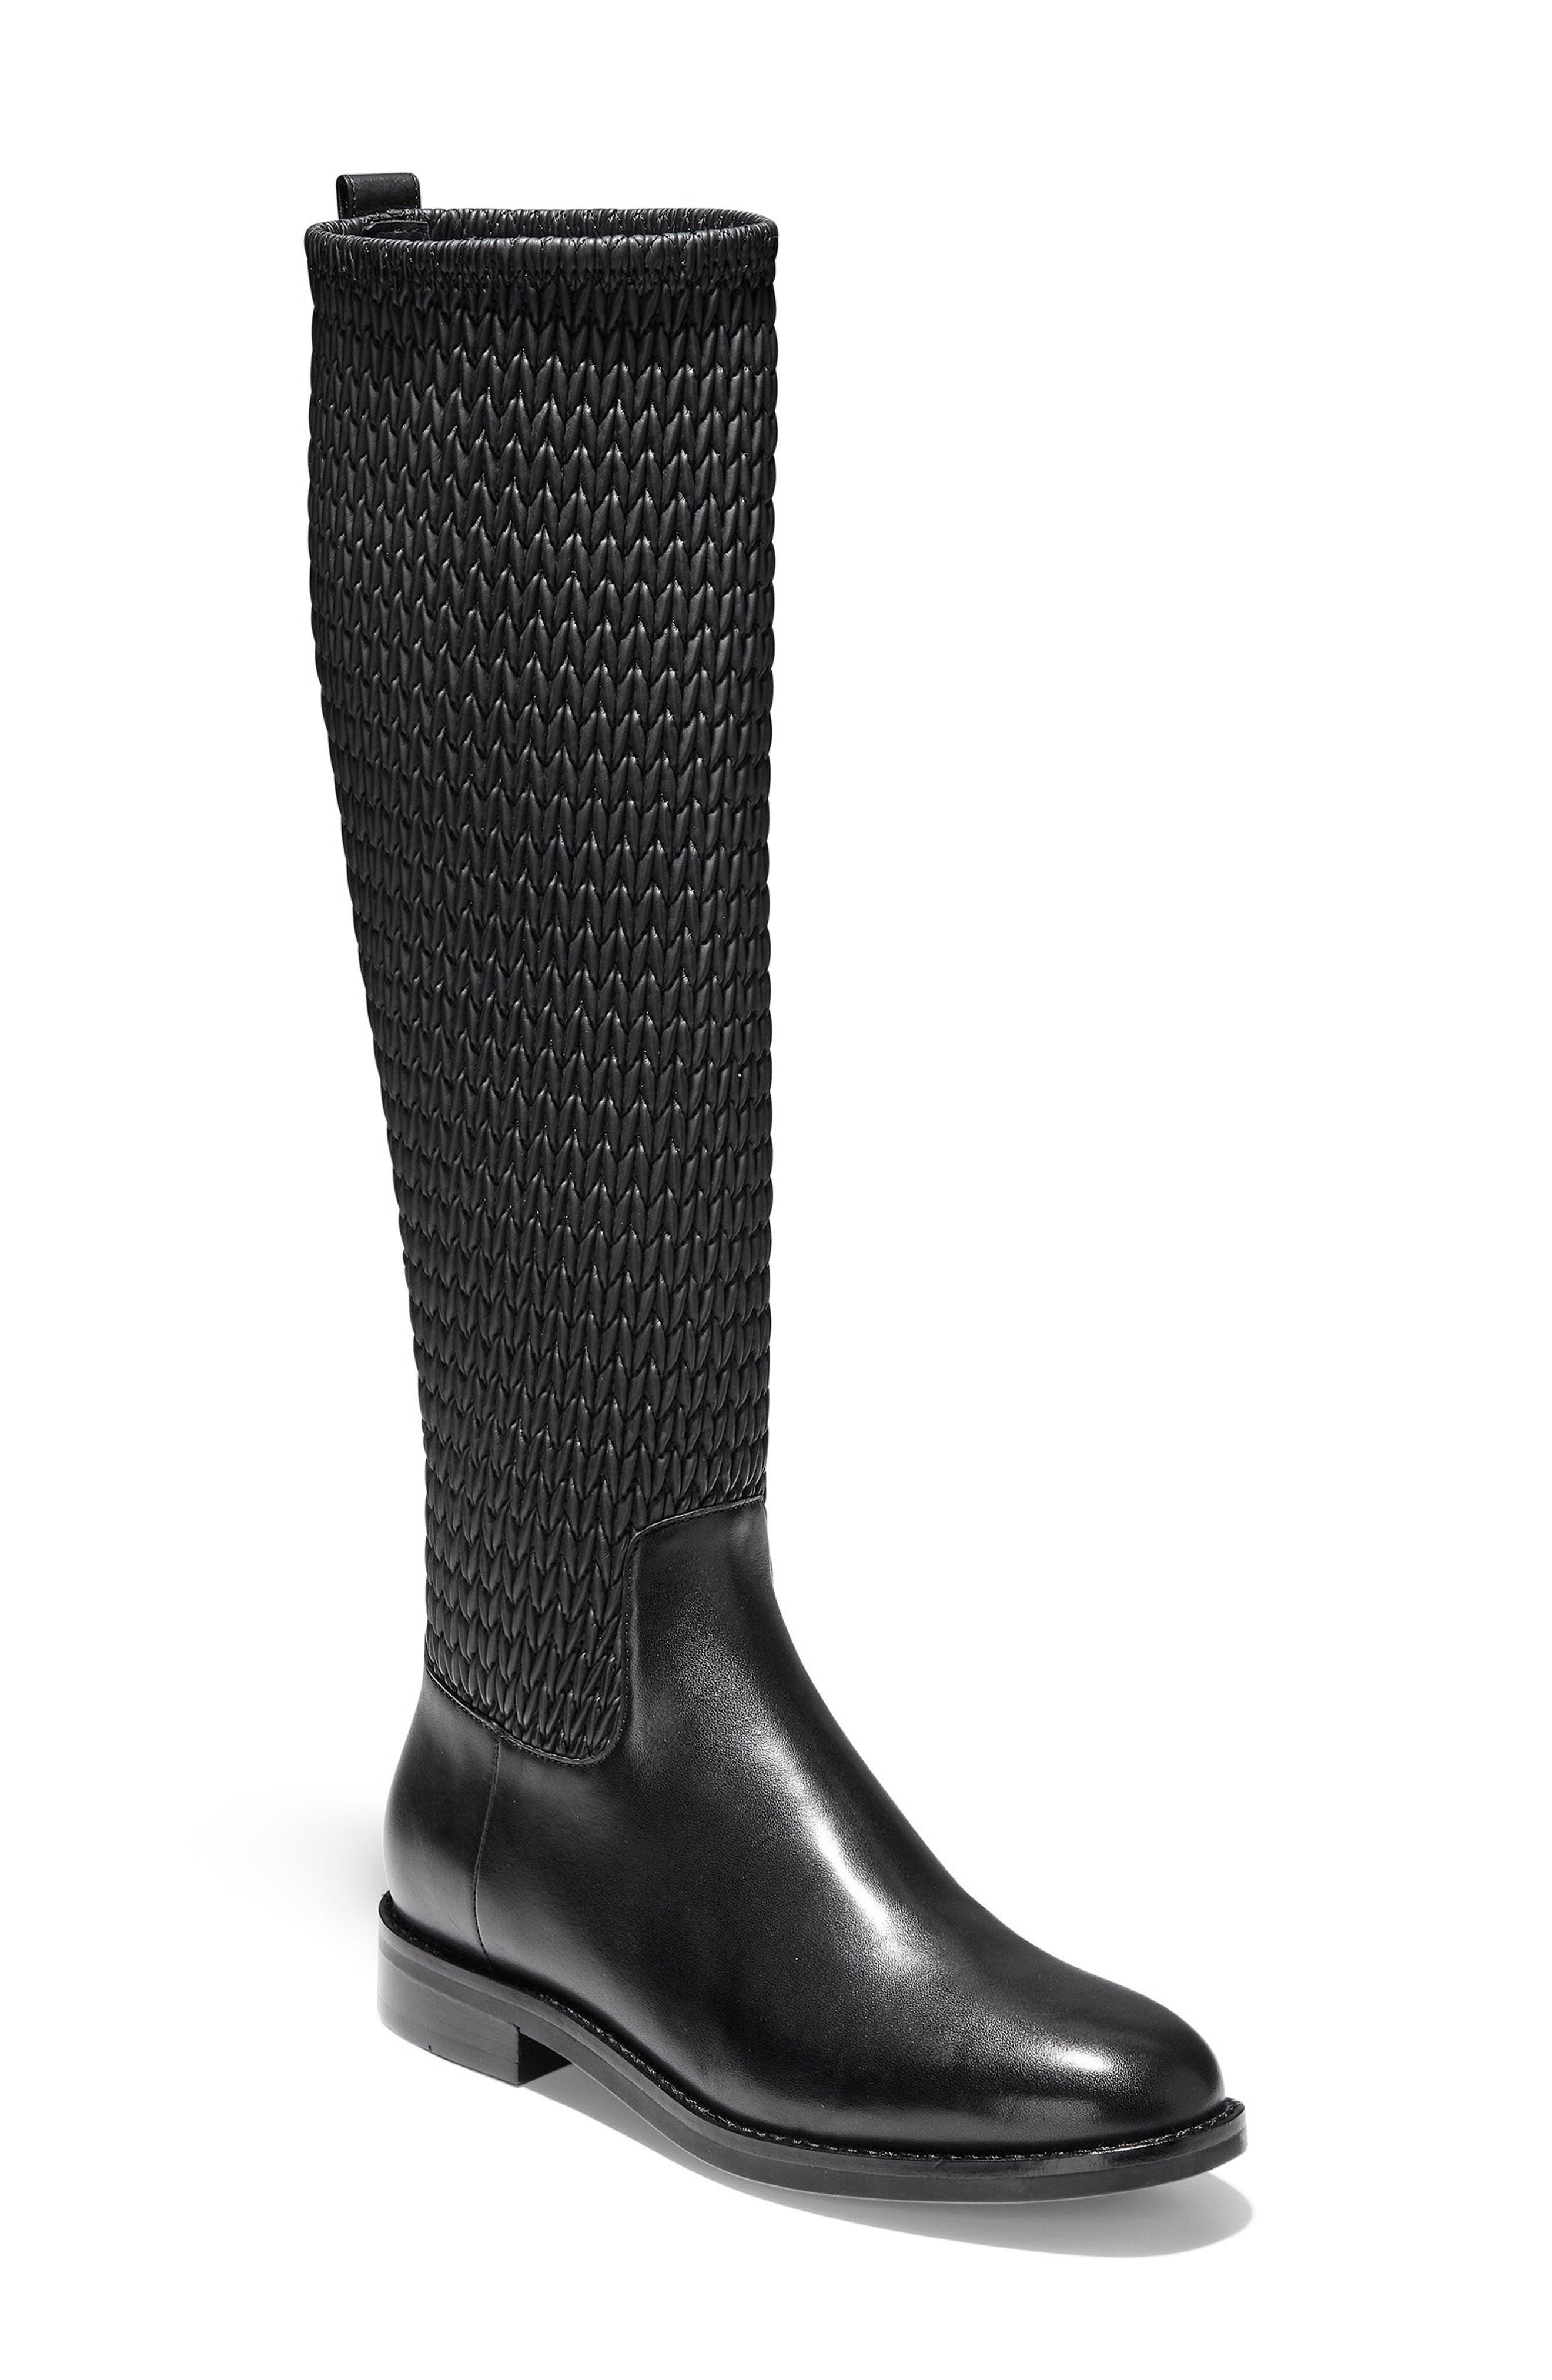 Lexi Grand Knee High Stretch Boot,                         Main,                         color, BLACK LEATHER